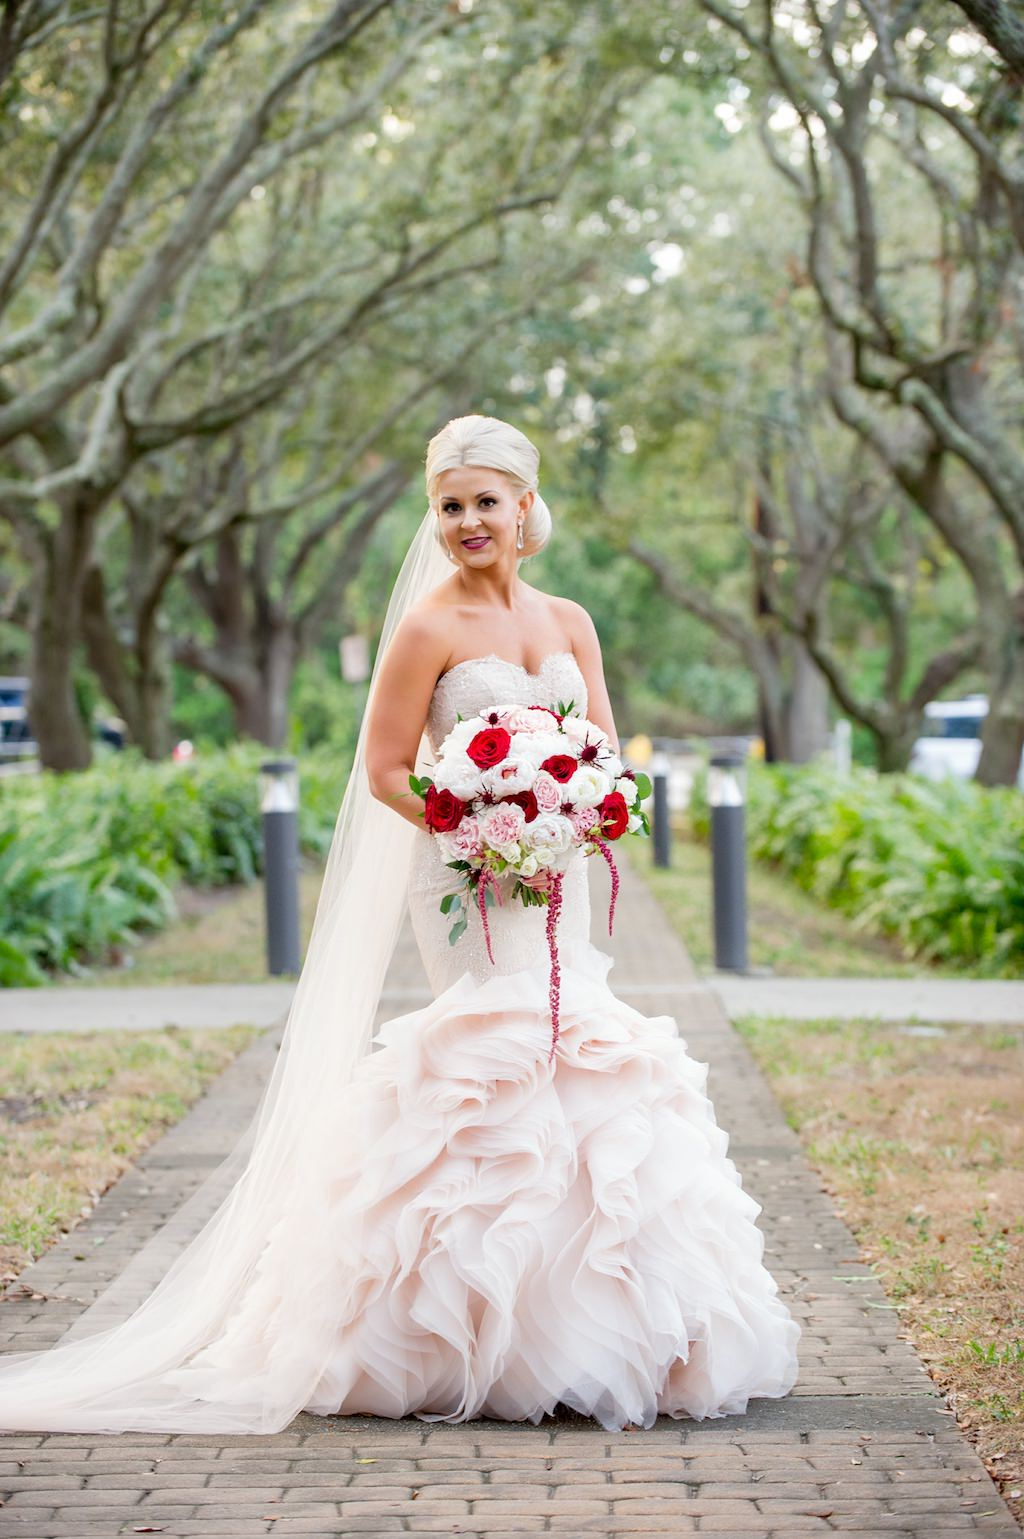 Outdoor Park Bridal Portrait In Blush Pink Strapless Layered Mermaid Wedding Dress With Red Rose And White Floral Greenery Bouquet Ta: Red Diamond Wedding Dresses At Reisefeber.org